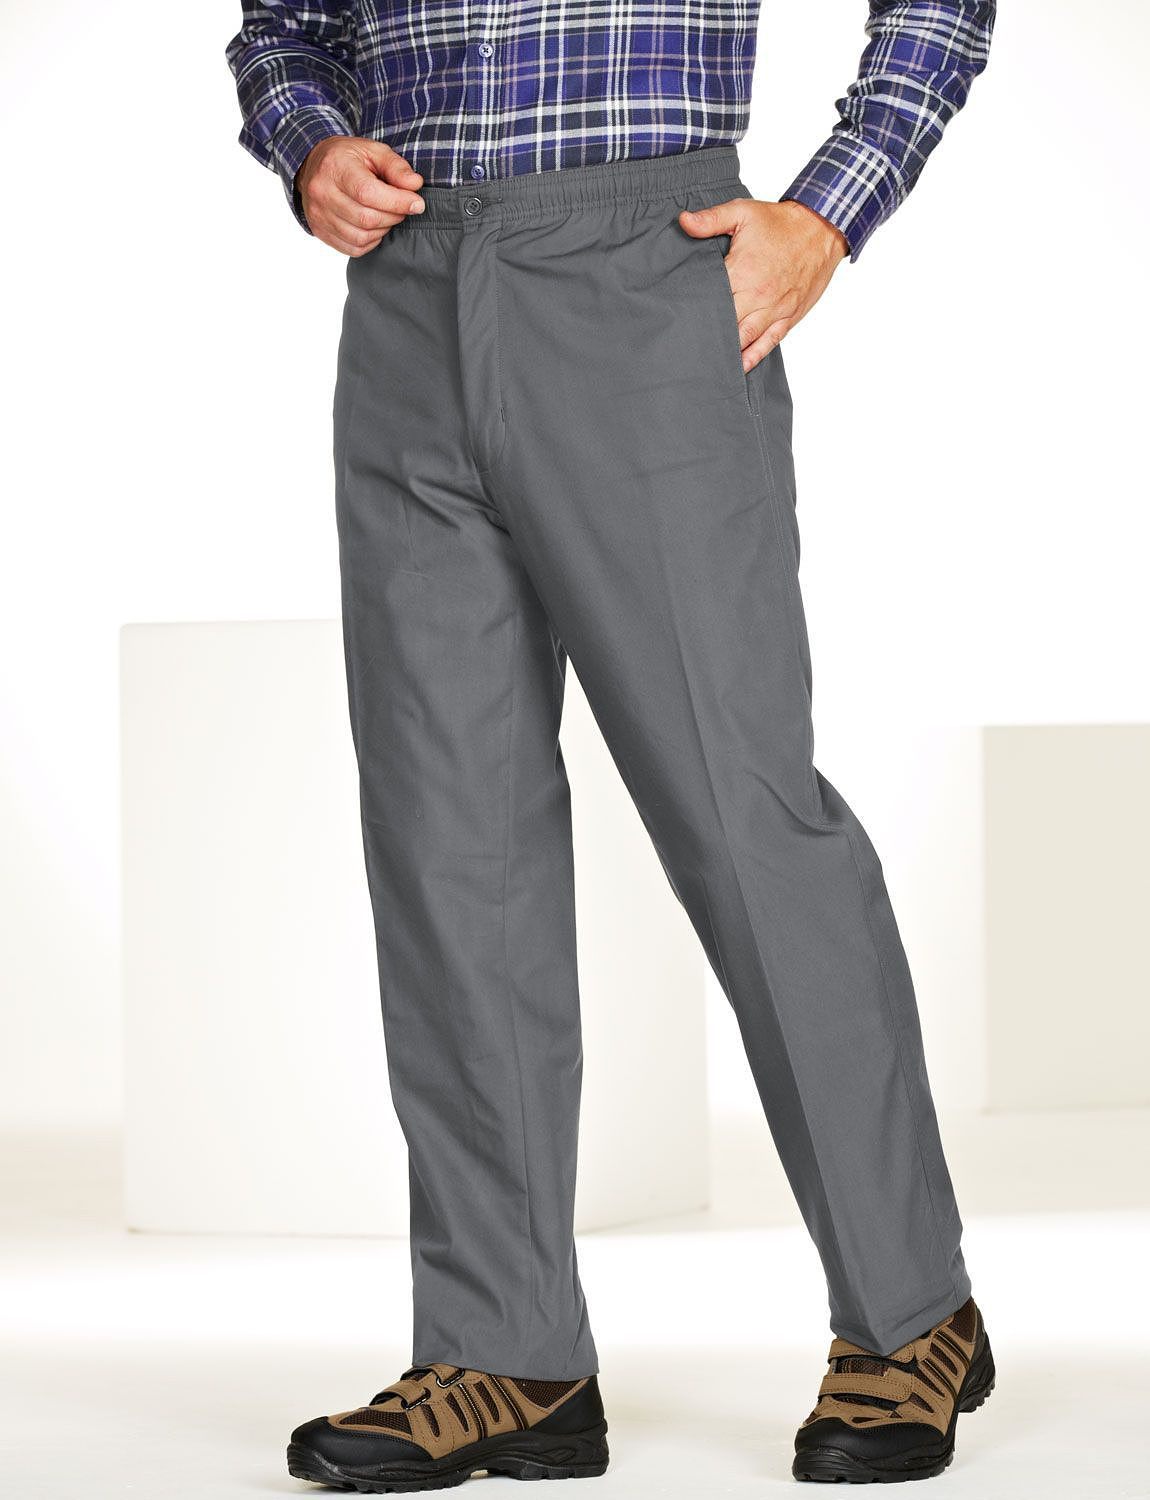 High Rise Fleece Lined Leisure Trousers